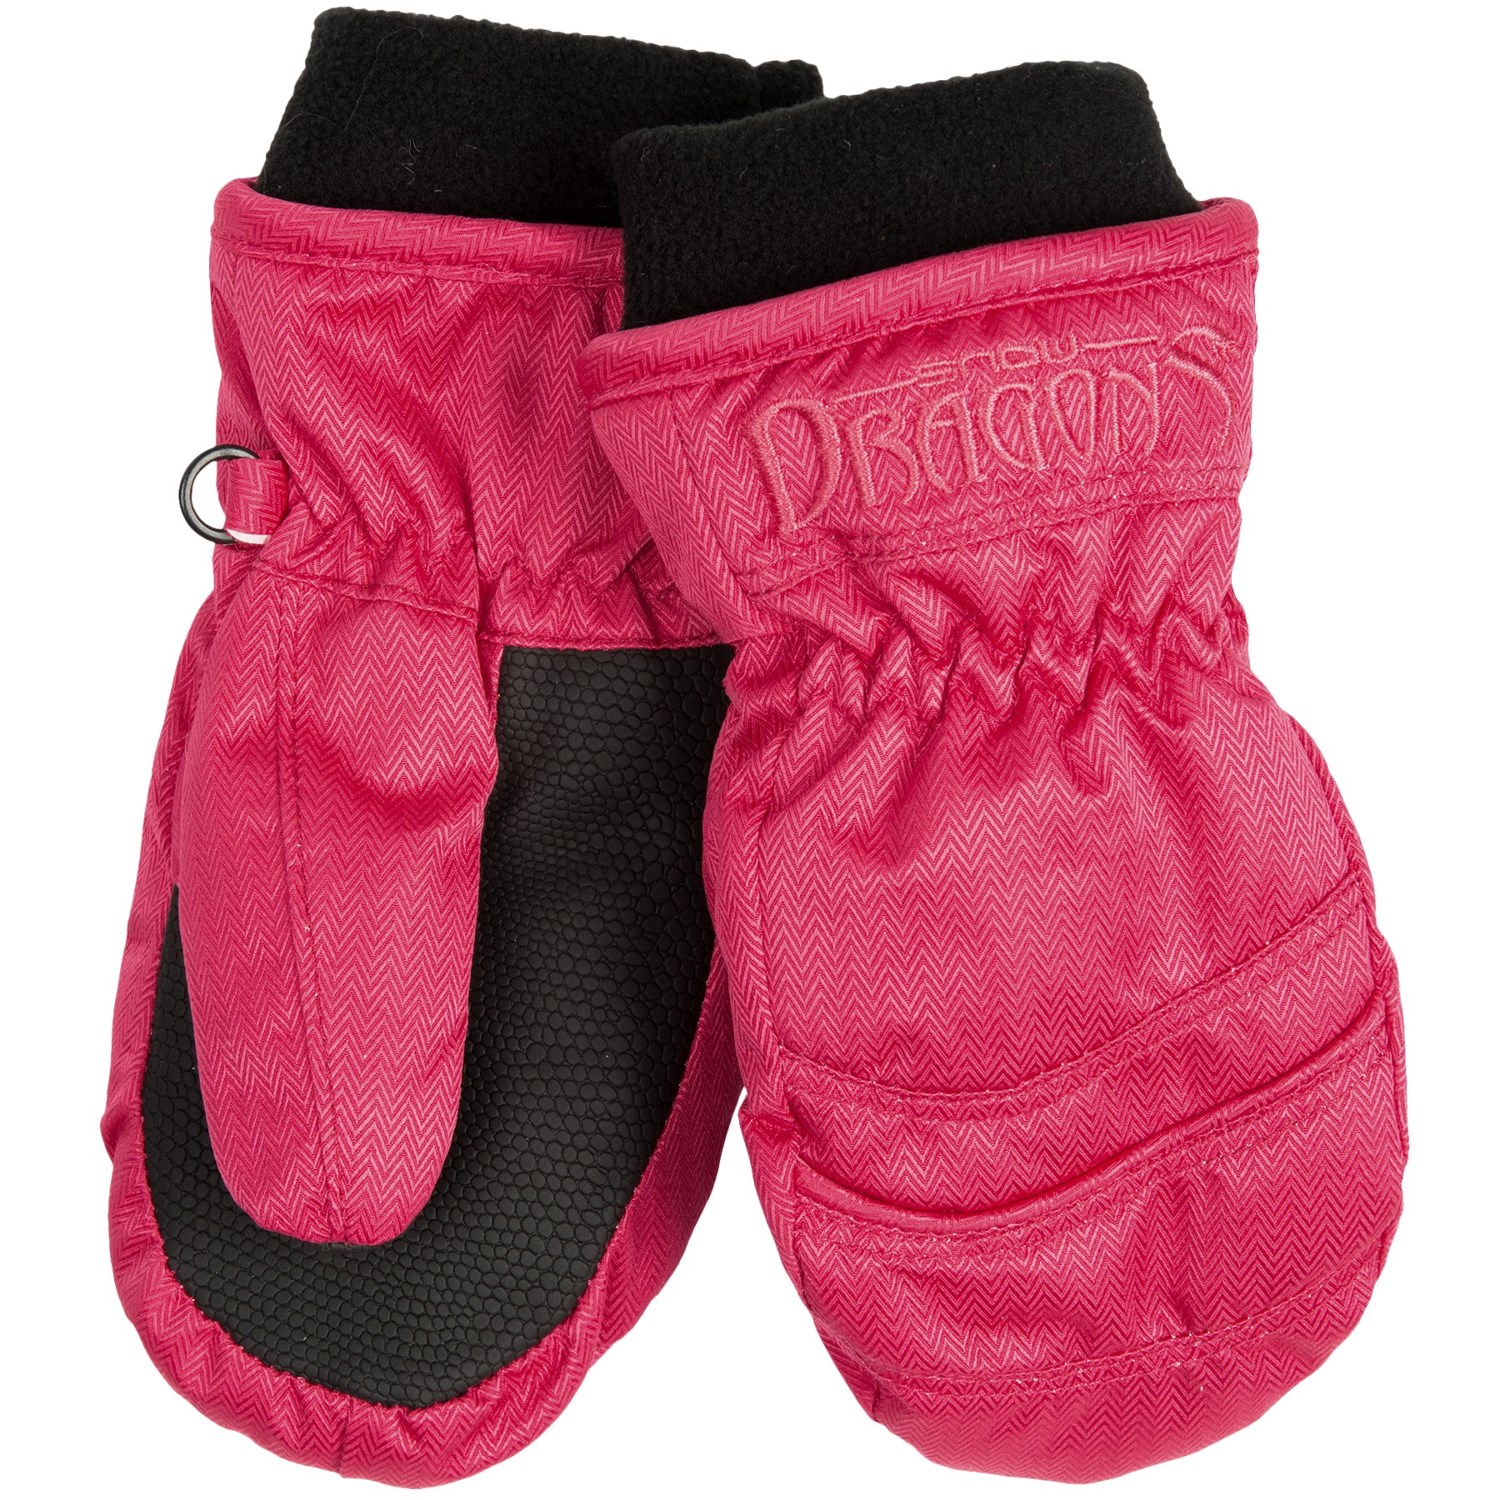 Most gloves and mittens designed for downhill skiing and snowboarding include a waterproof, breathable barrier to prevent moisture from snow and rain .